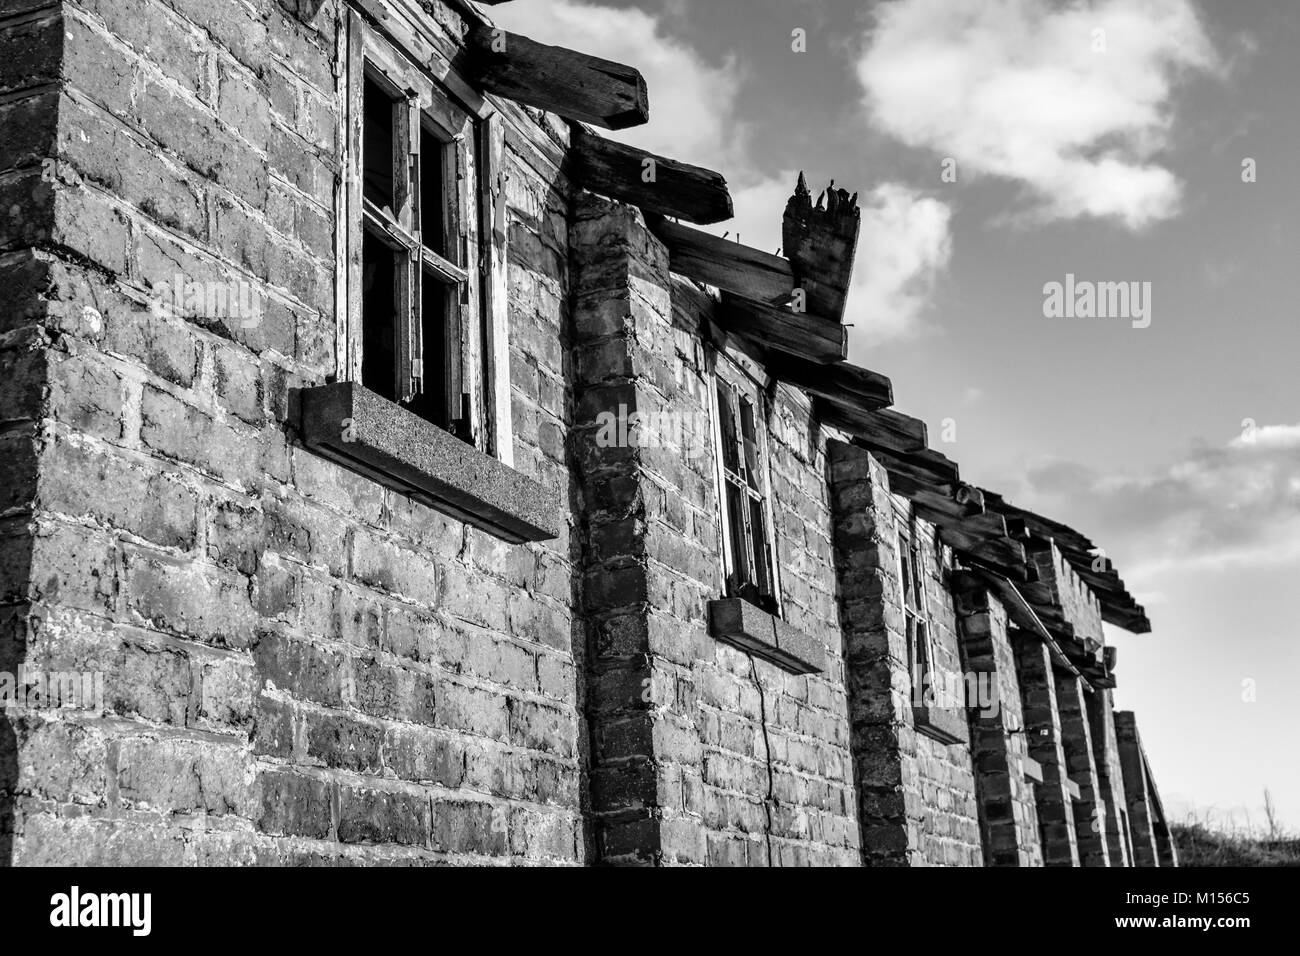 black and white photo of an old brick building with broken windows - Stock Image